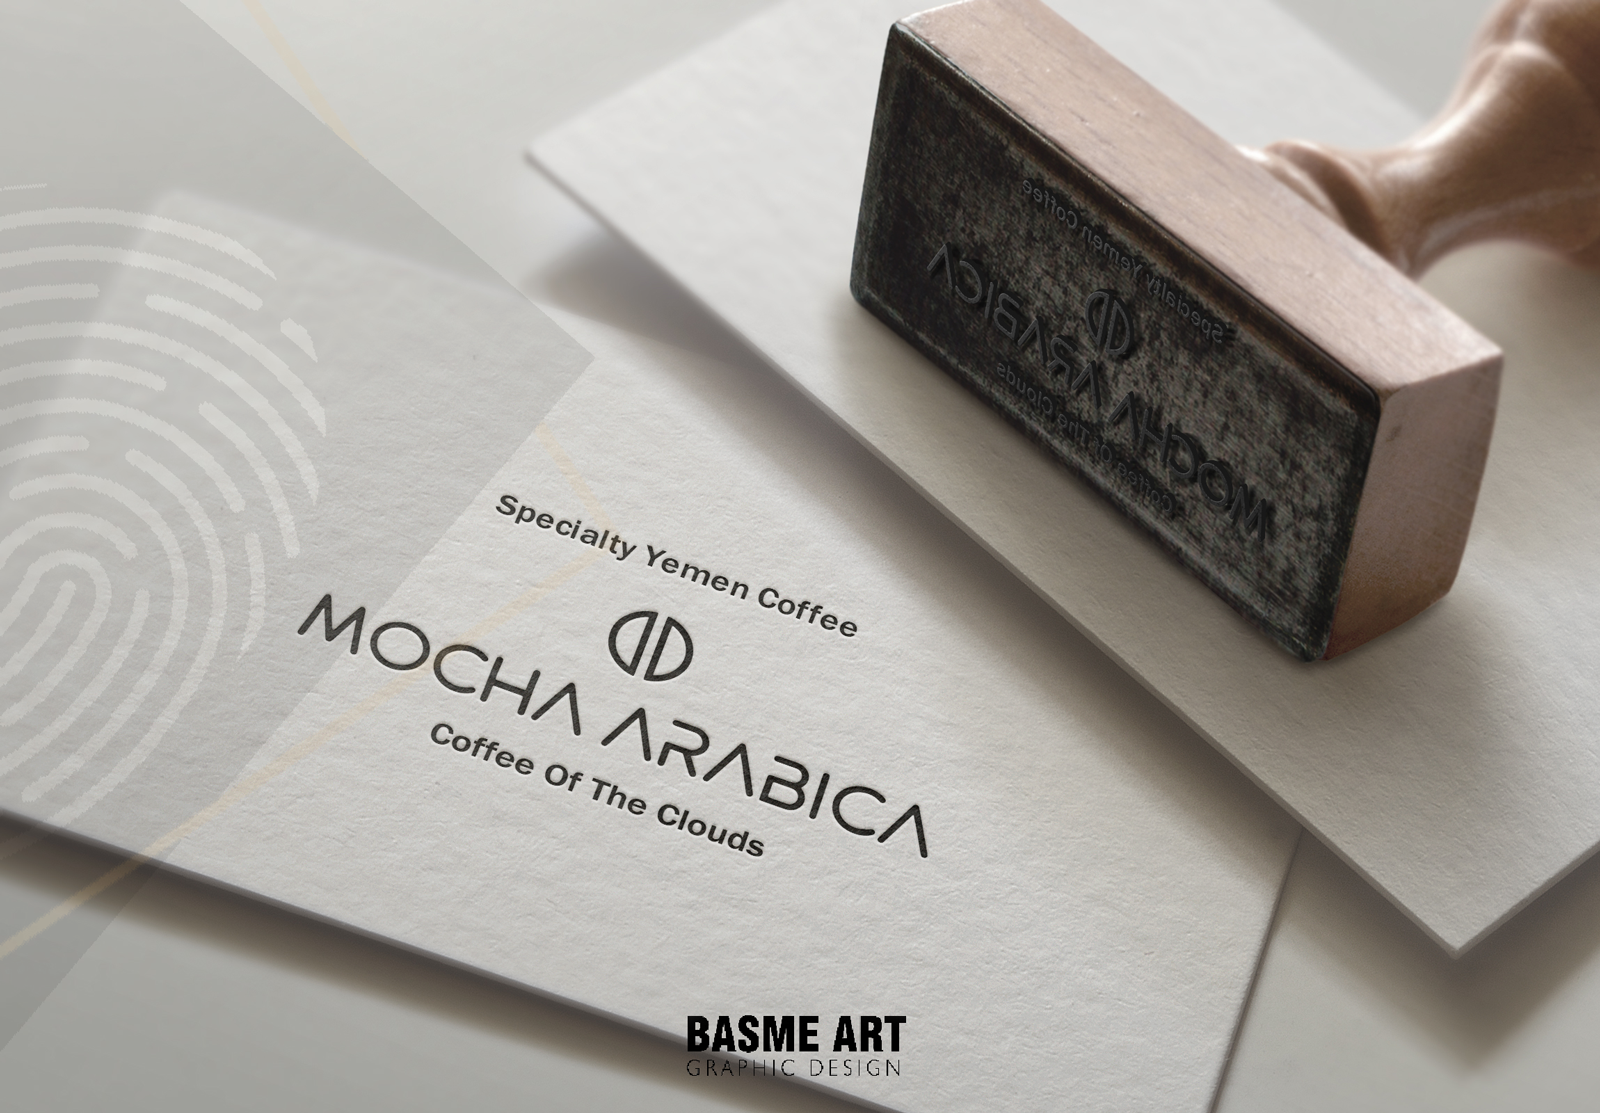 Pin By Anas Kedmani On Http Www Basmeart Com Place Card Holders Card Holder Design